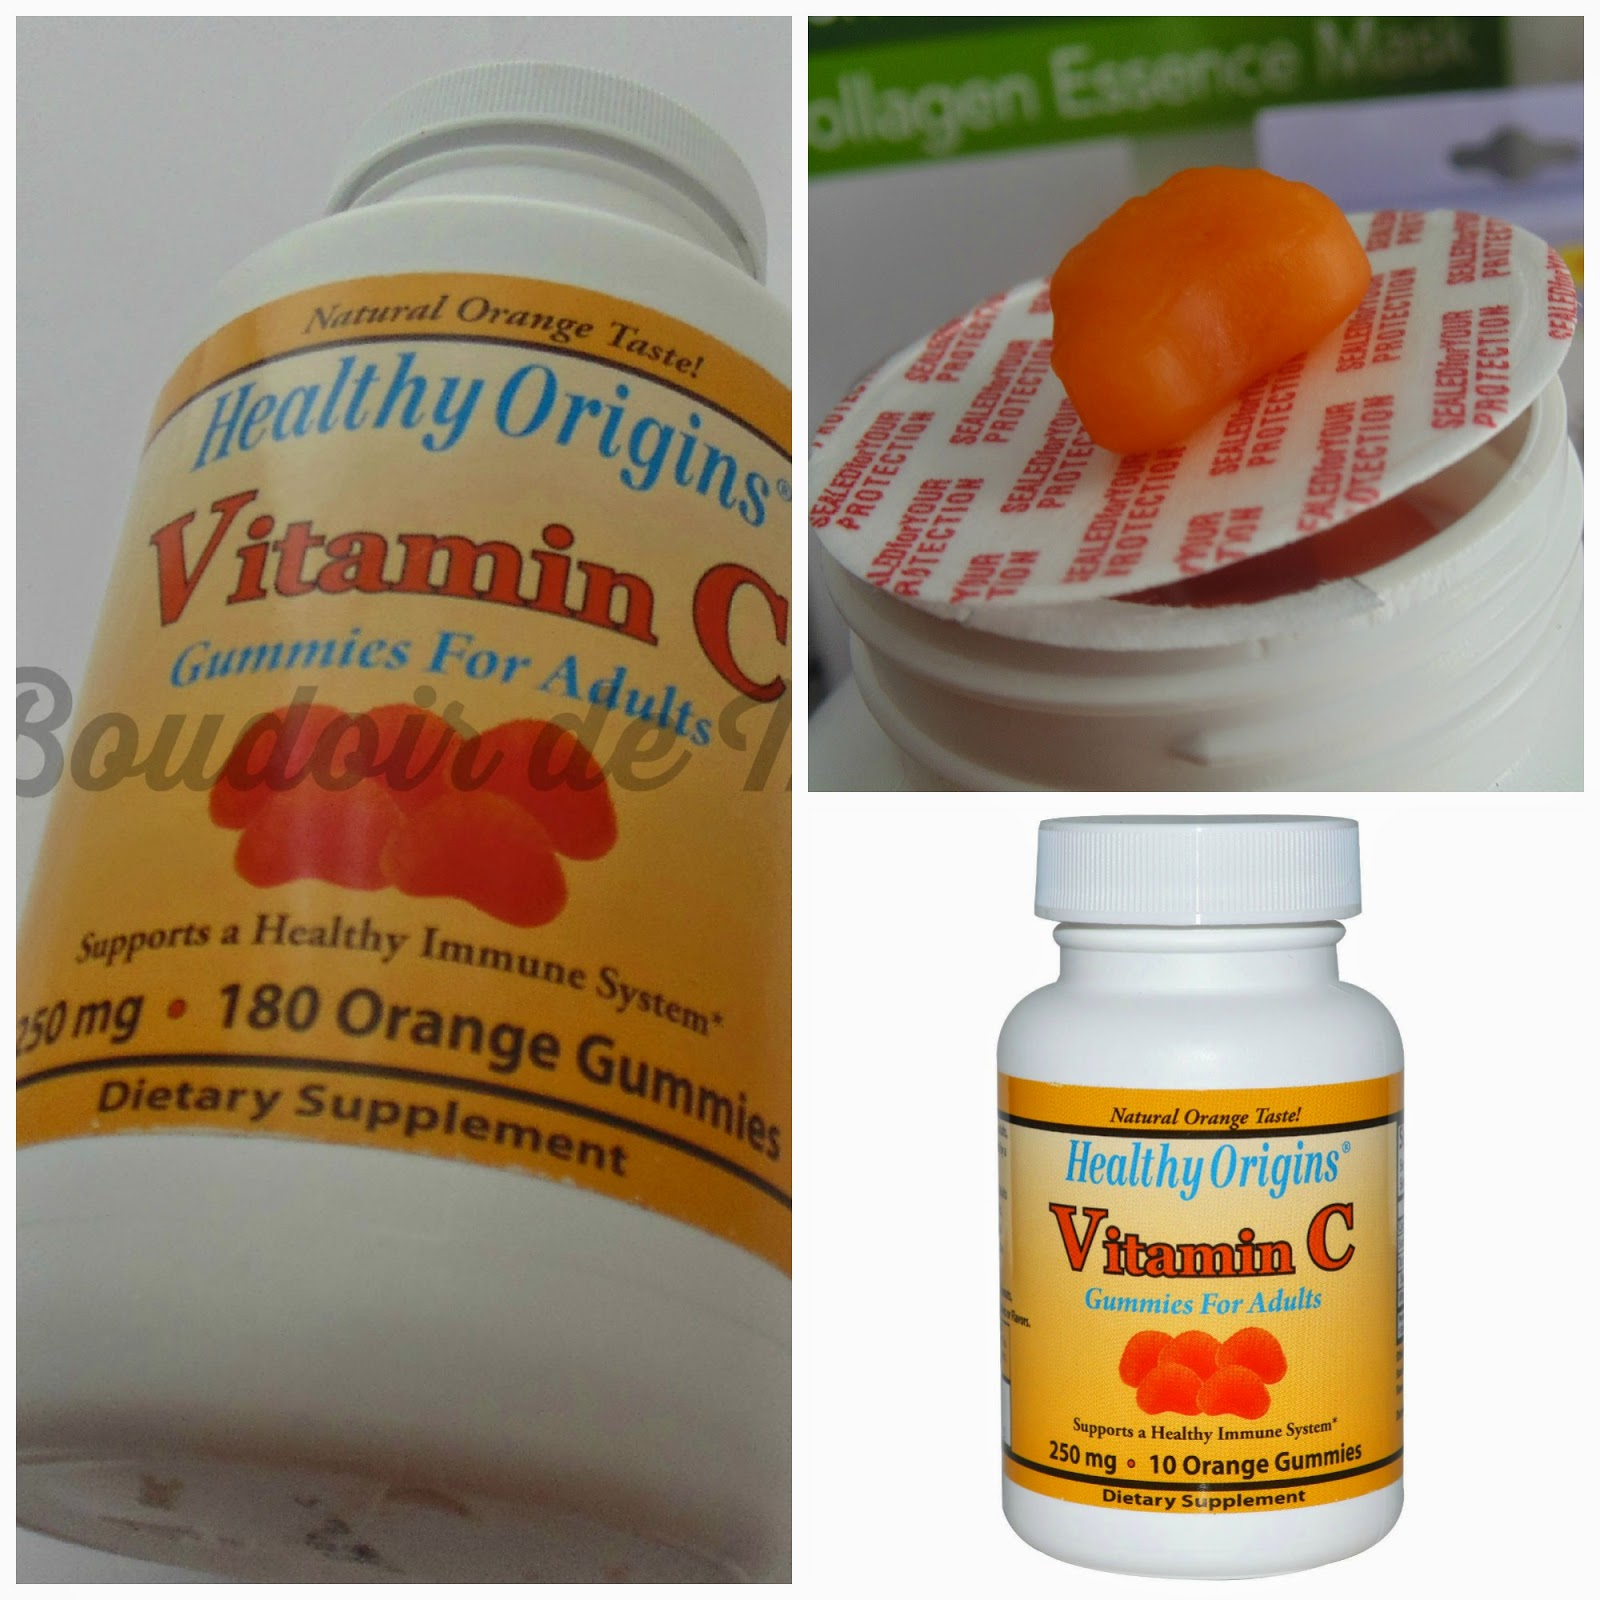 Vitamina c en gominolas Vitamin C gummies